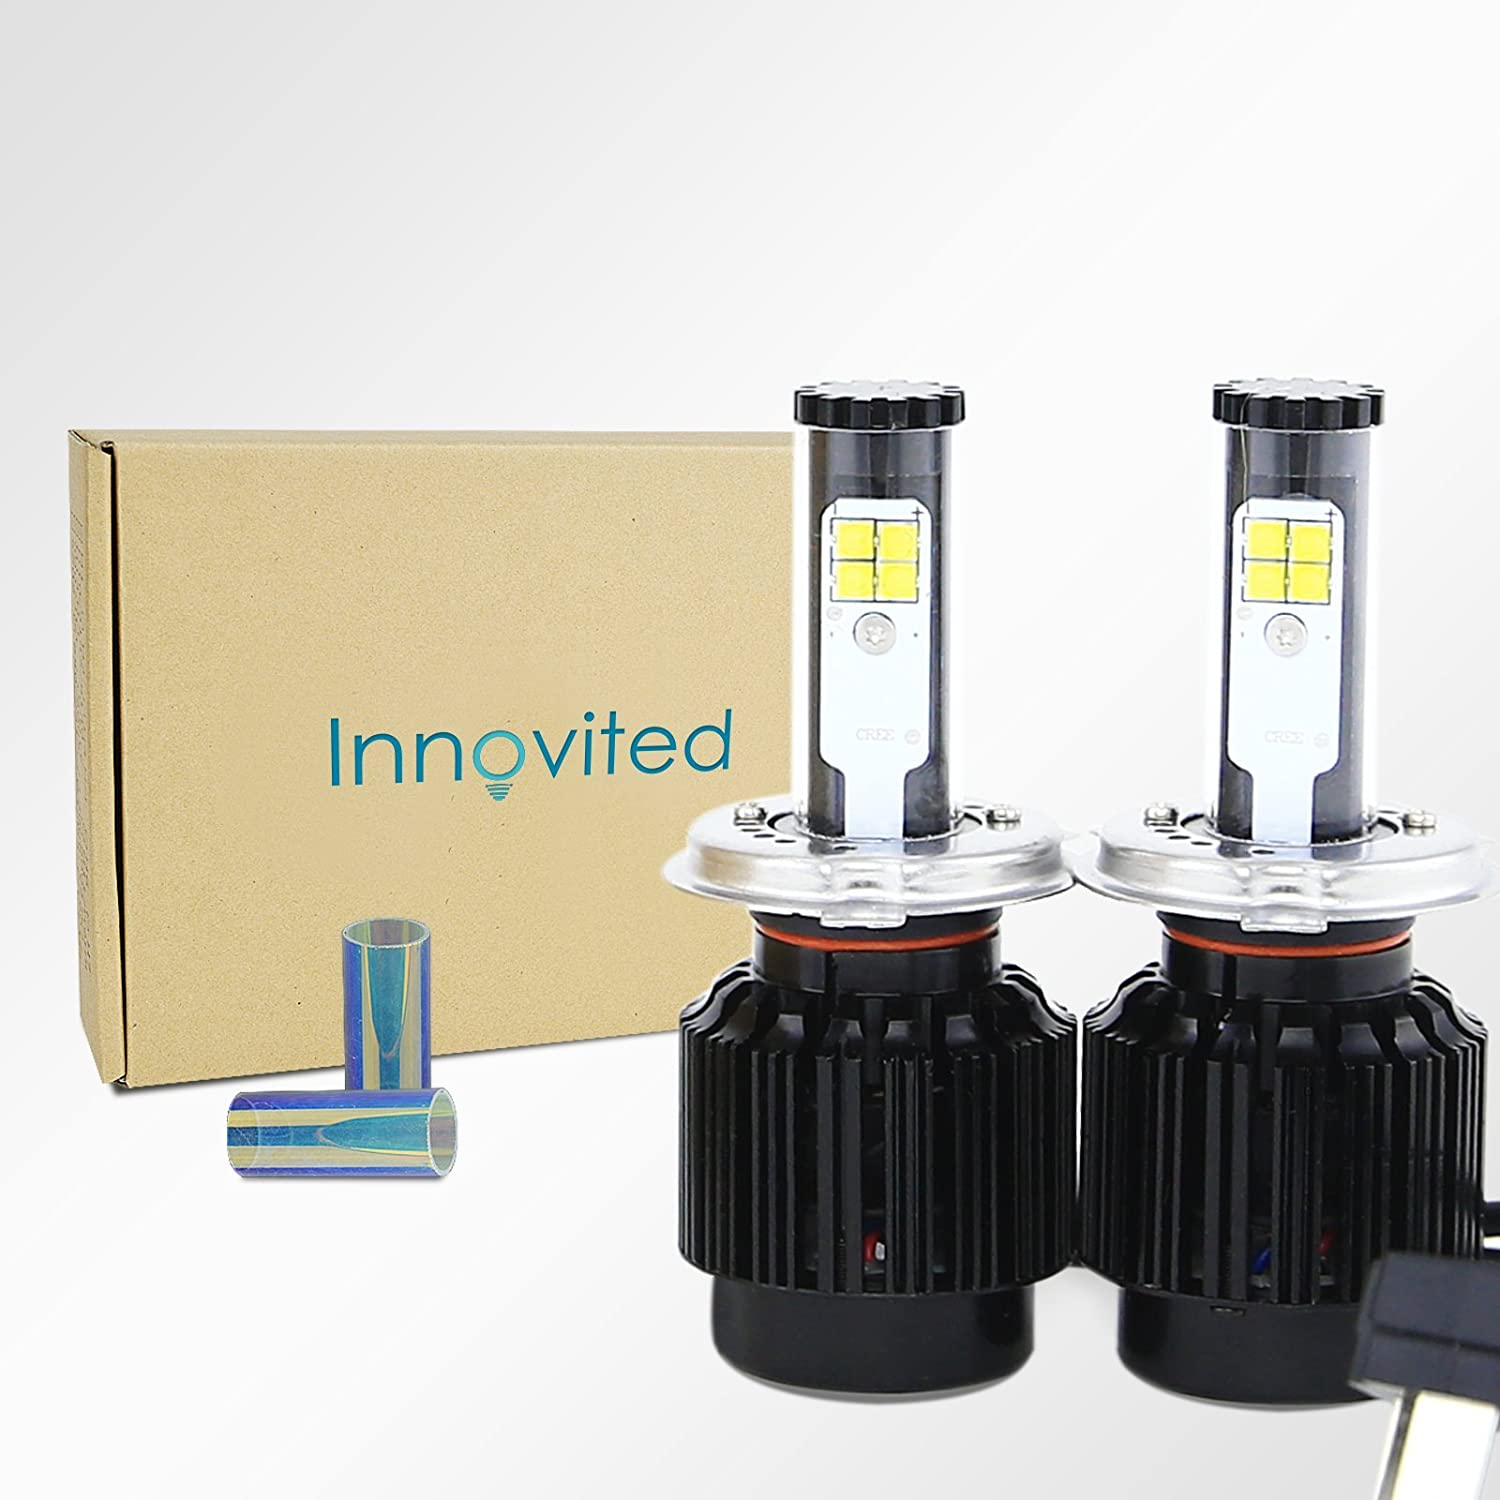 Innovited All In One LED Headlight Conversion Kit - H4 9003- 6000K 80W 8,000Lm With CREE Bulbs - 2 Year Warranty